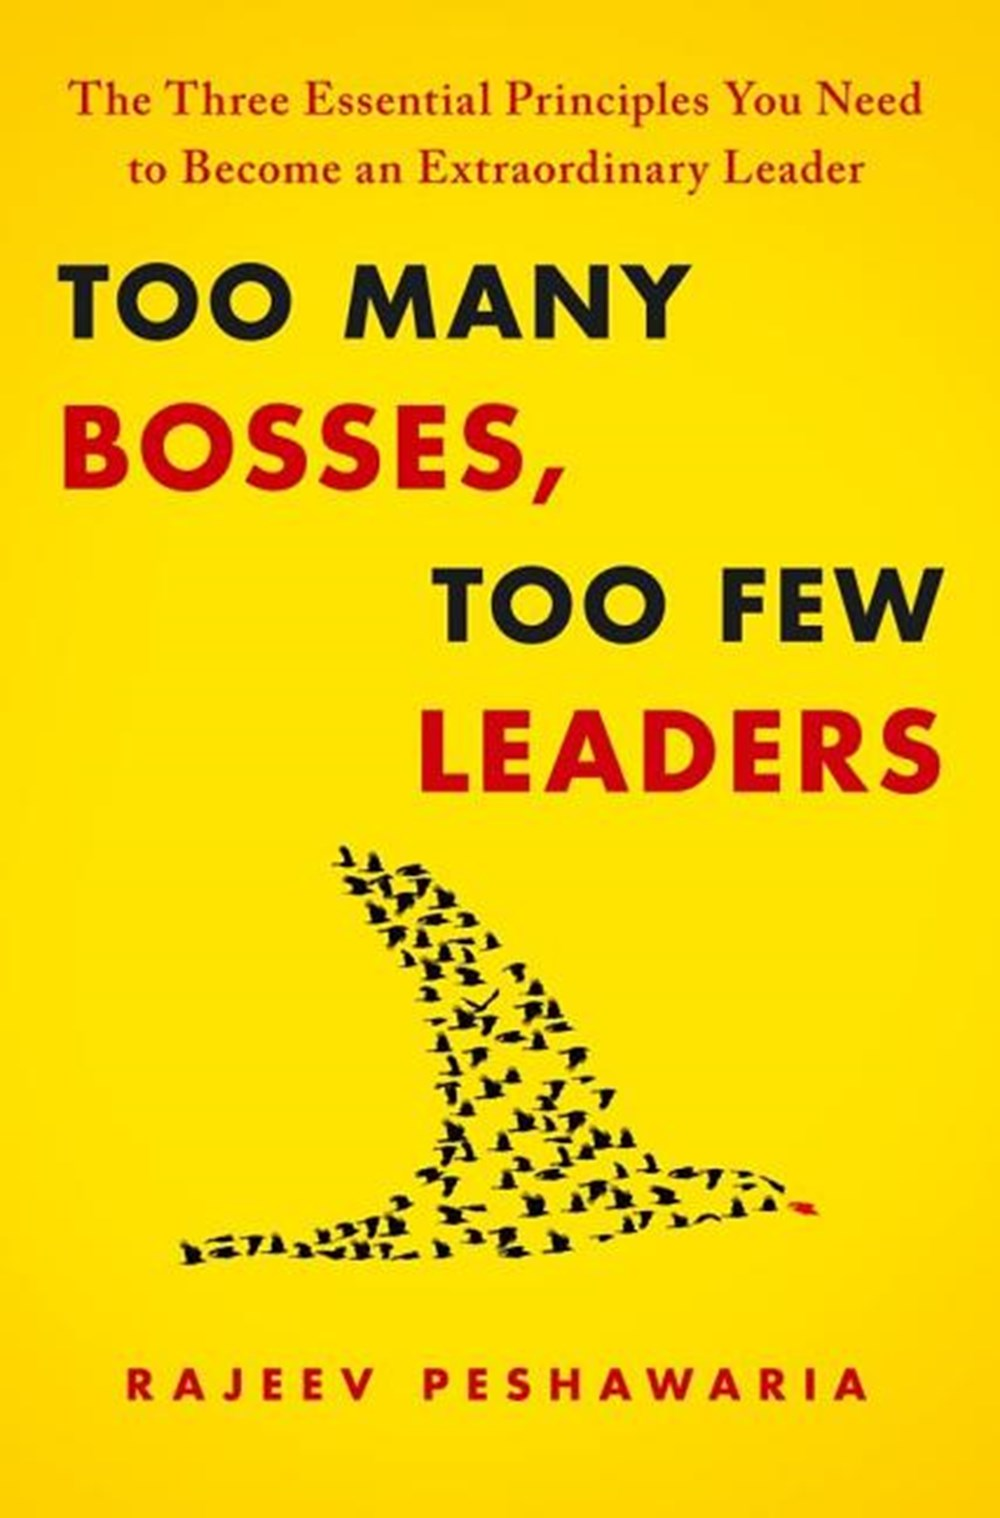 Too Many Bosses, Too Few Leaders: The Three Essential Principles You Need to Become an Extraordinary